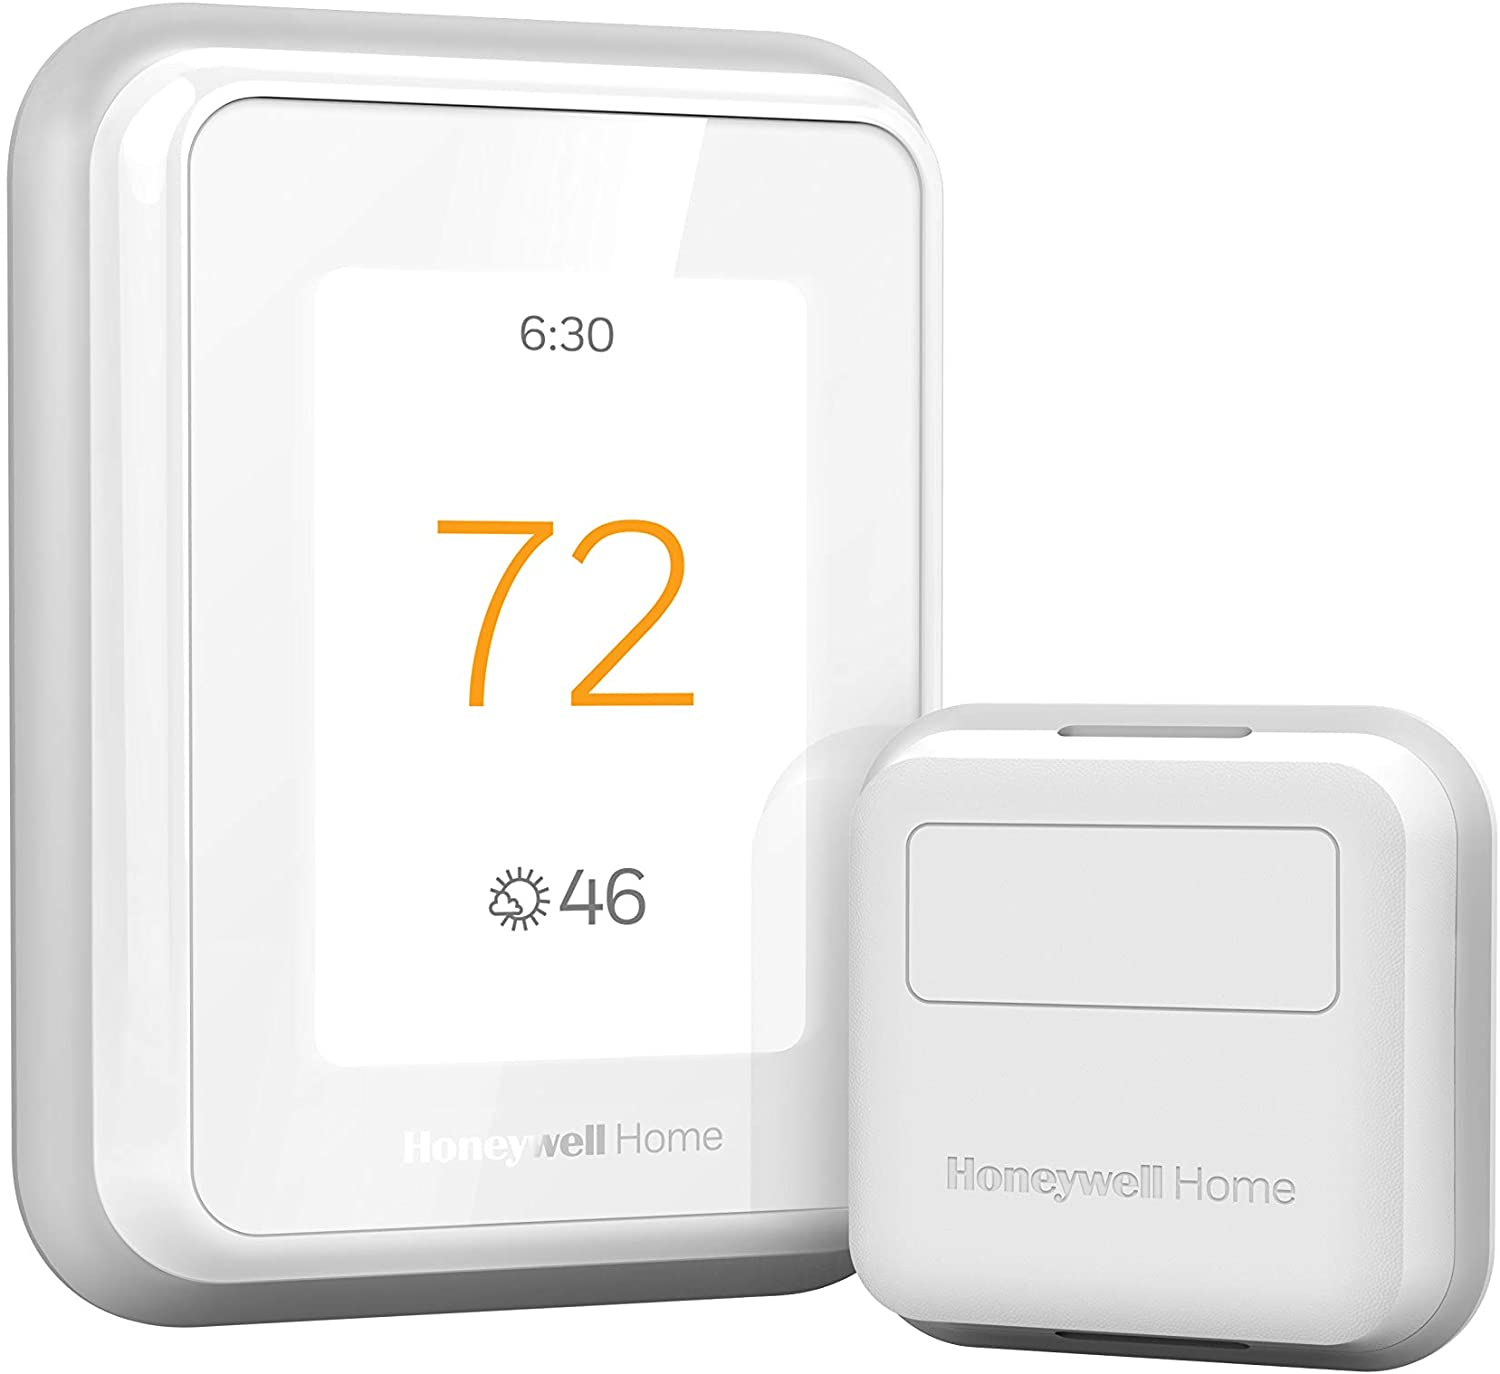 Honeywell Home RCHT9610WFSW2003 T9 WiFi Thermostat